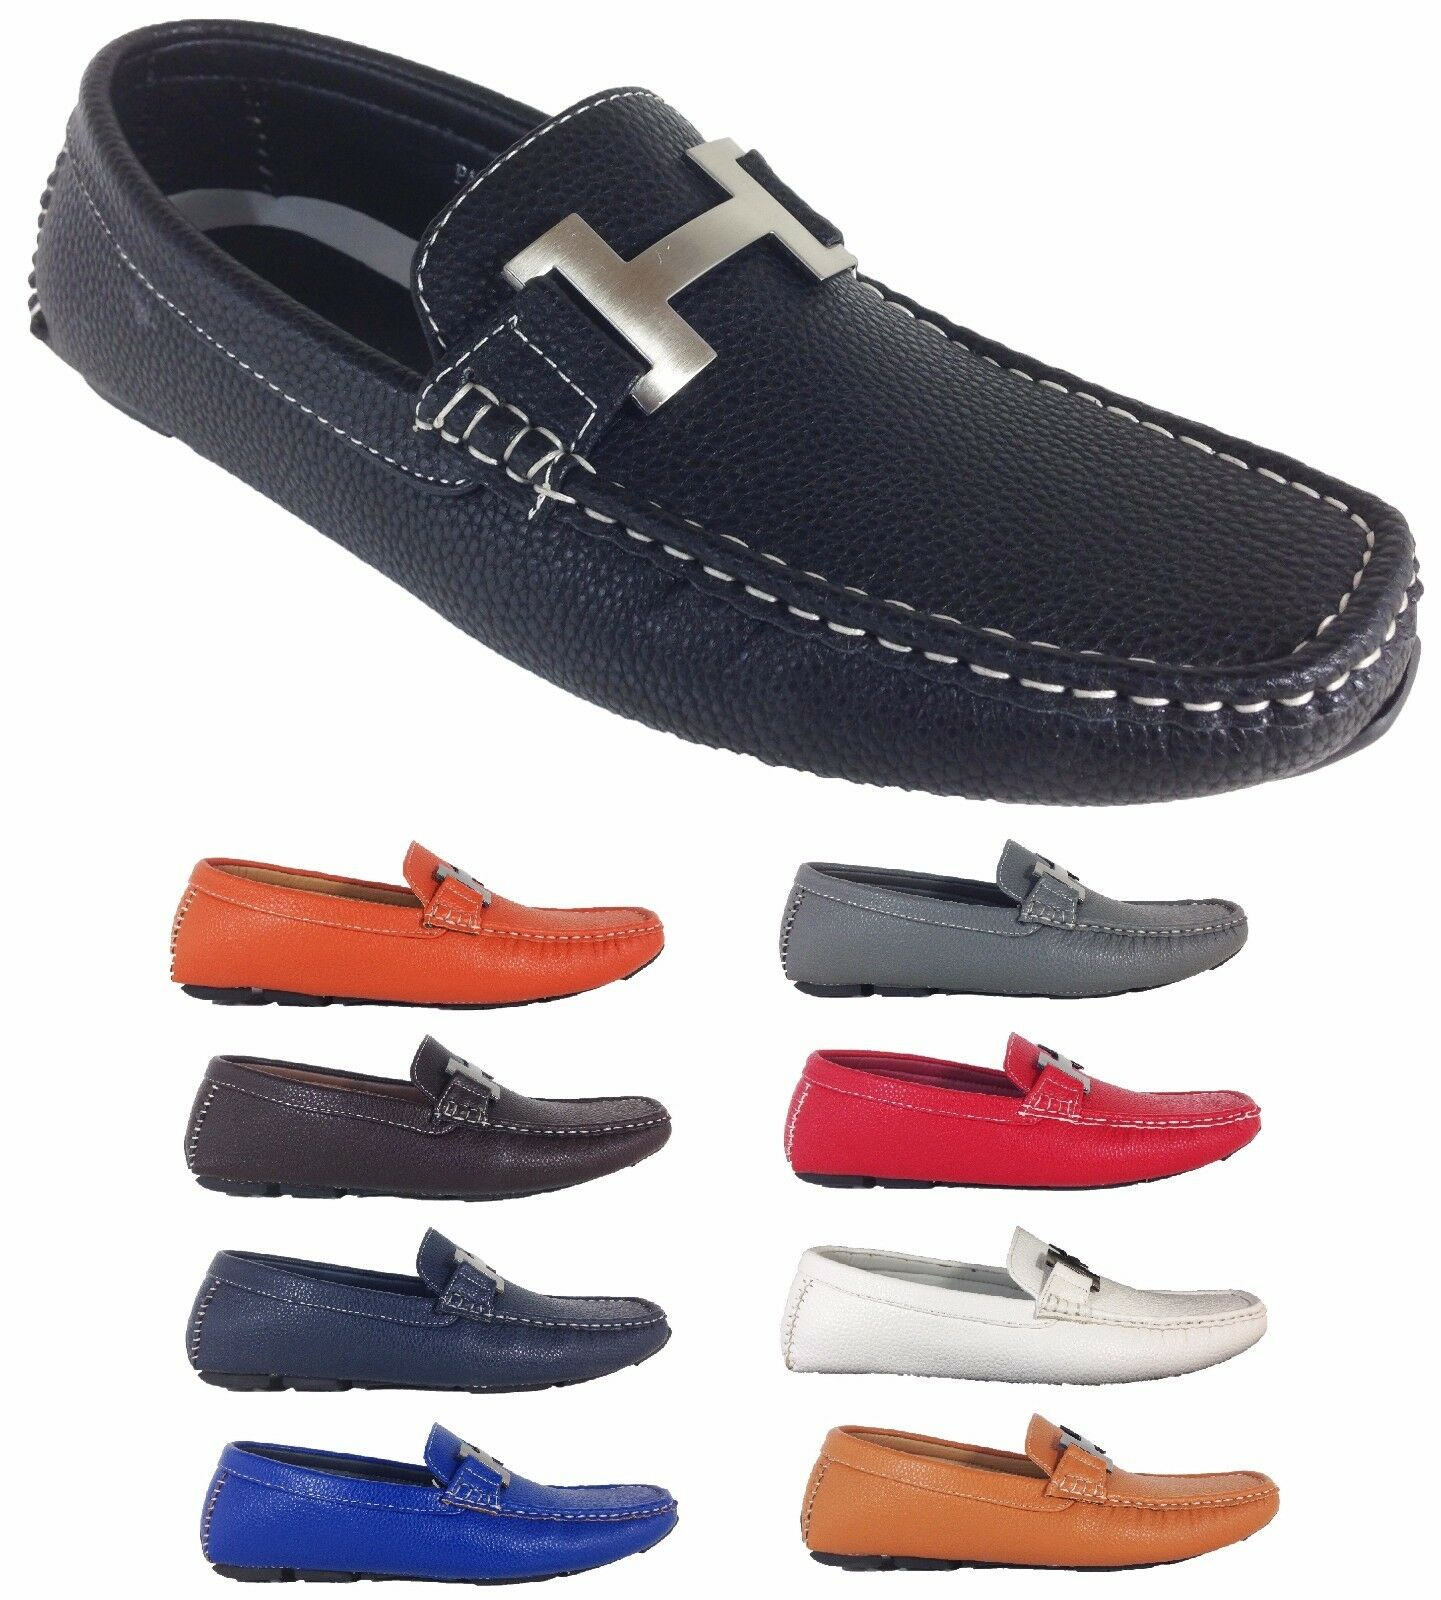 Men Brixton New Leather Driving Casual Shoes Moccasins Slip On D Island Mocasine Loafers Black Pyne03 1 Of 1free Shipping See More